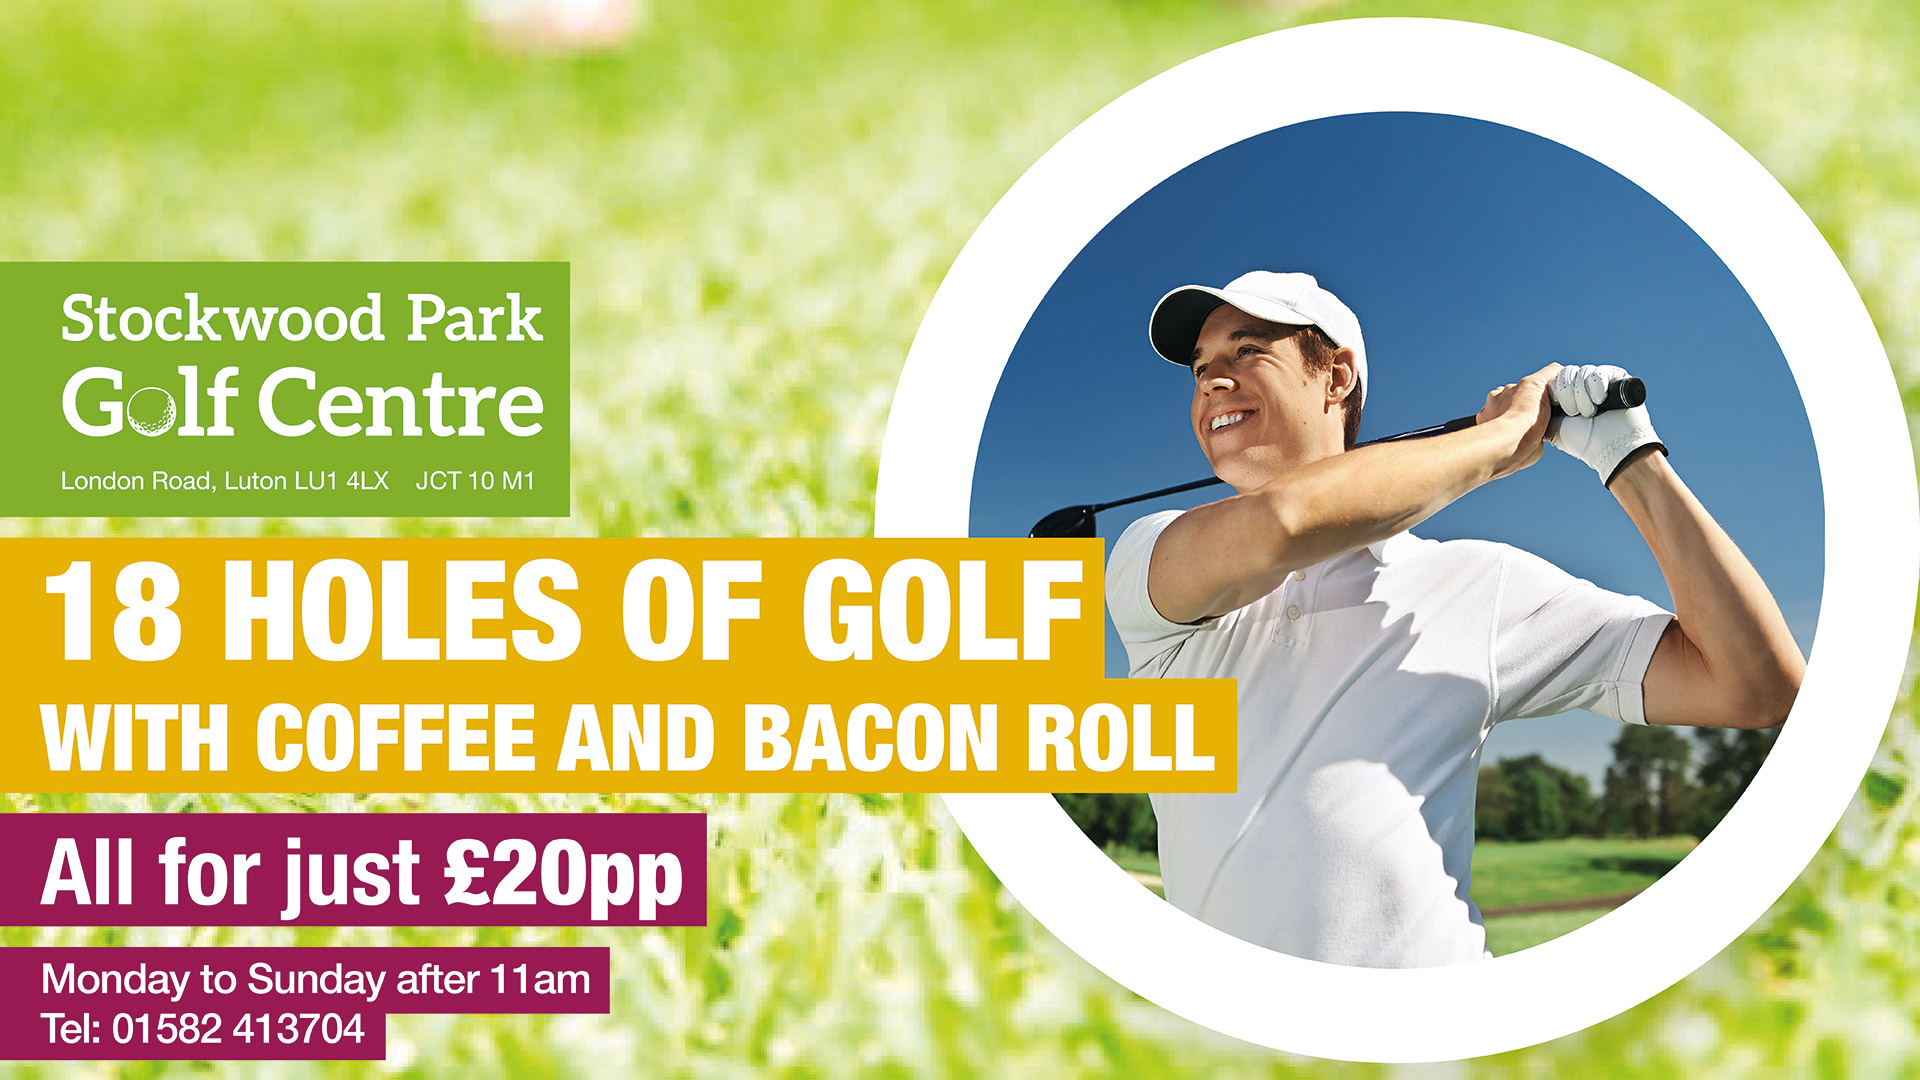 18-holes of Golf, Bacon Roll and Coffee for £20